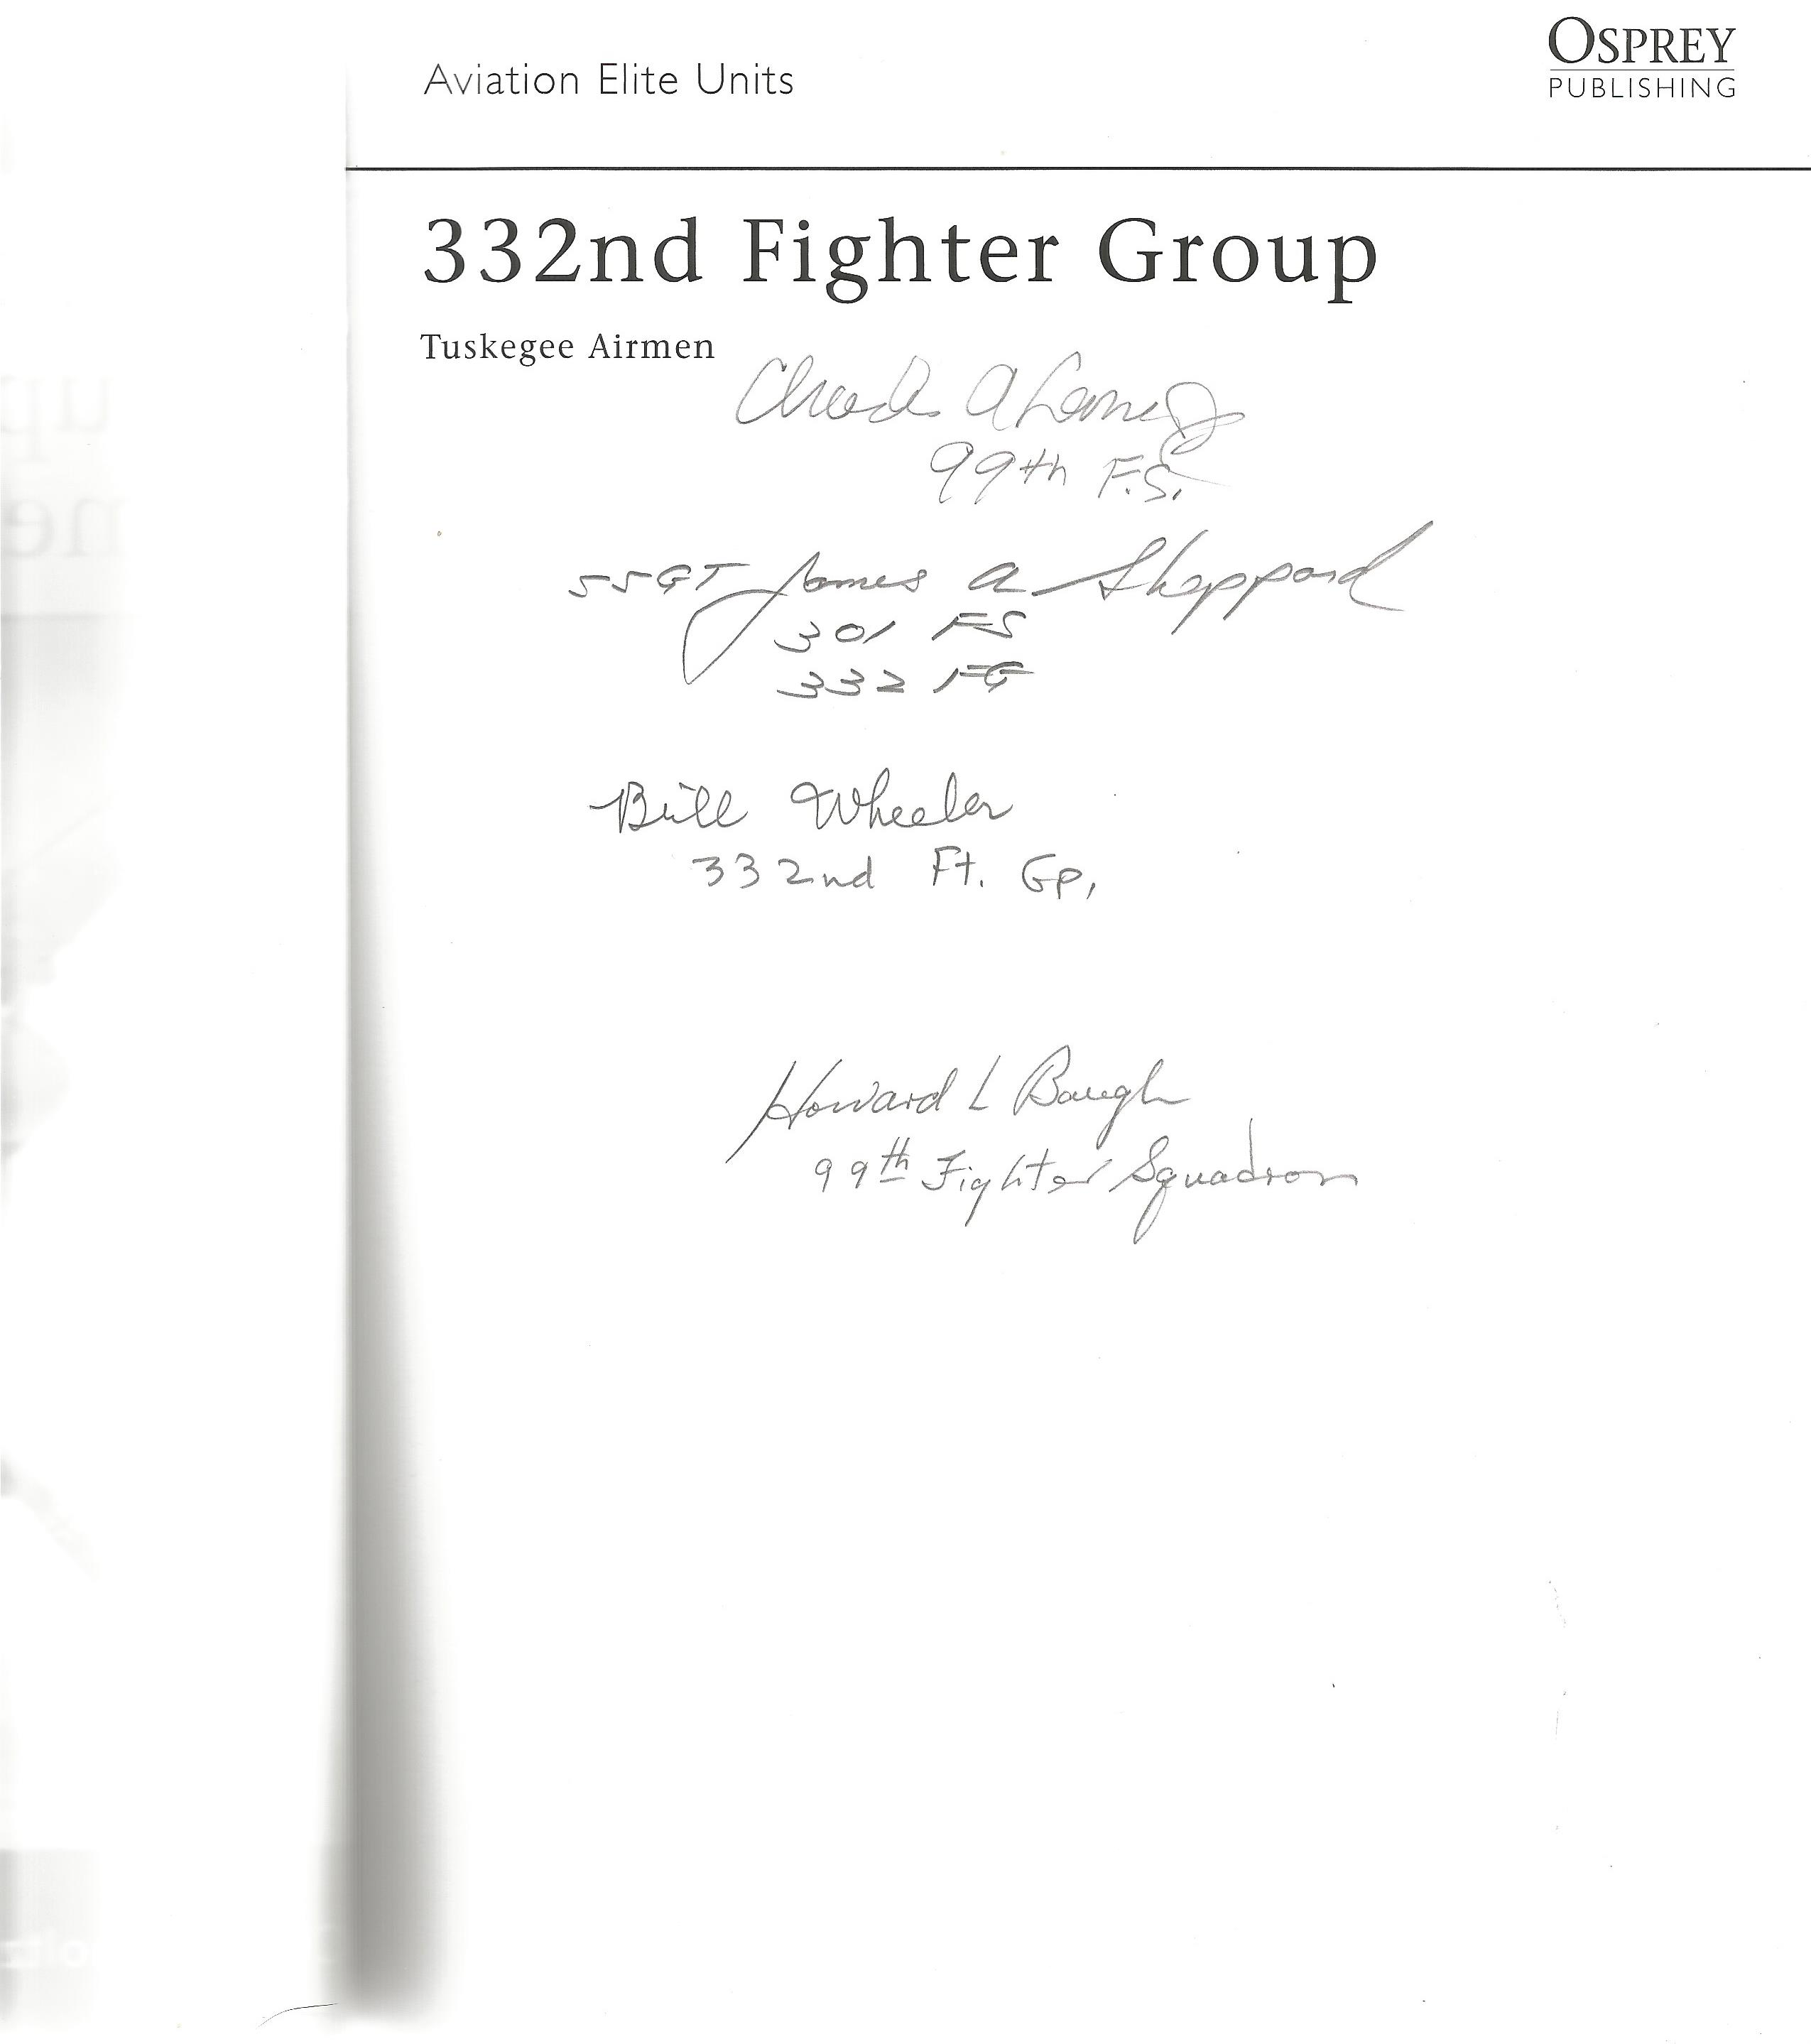 Chris Bucholtz. 332nd Fighter Group Tuskegee Airmen. A WW2 First Edition, Paperback book. Signed - Image 2 of 3